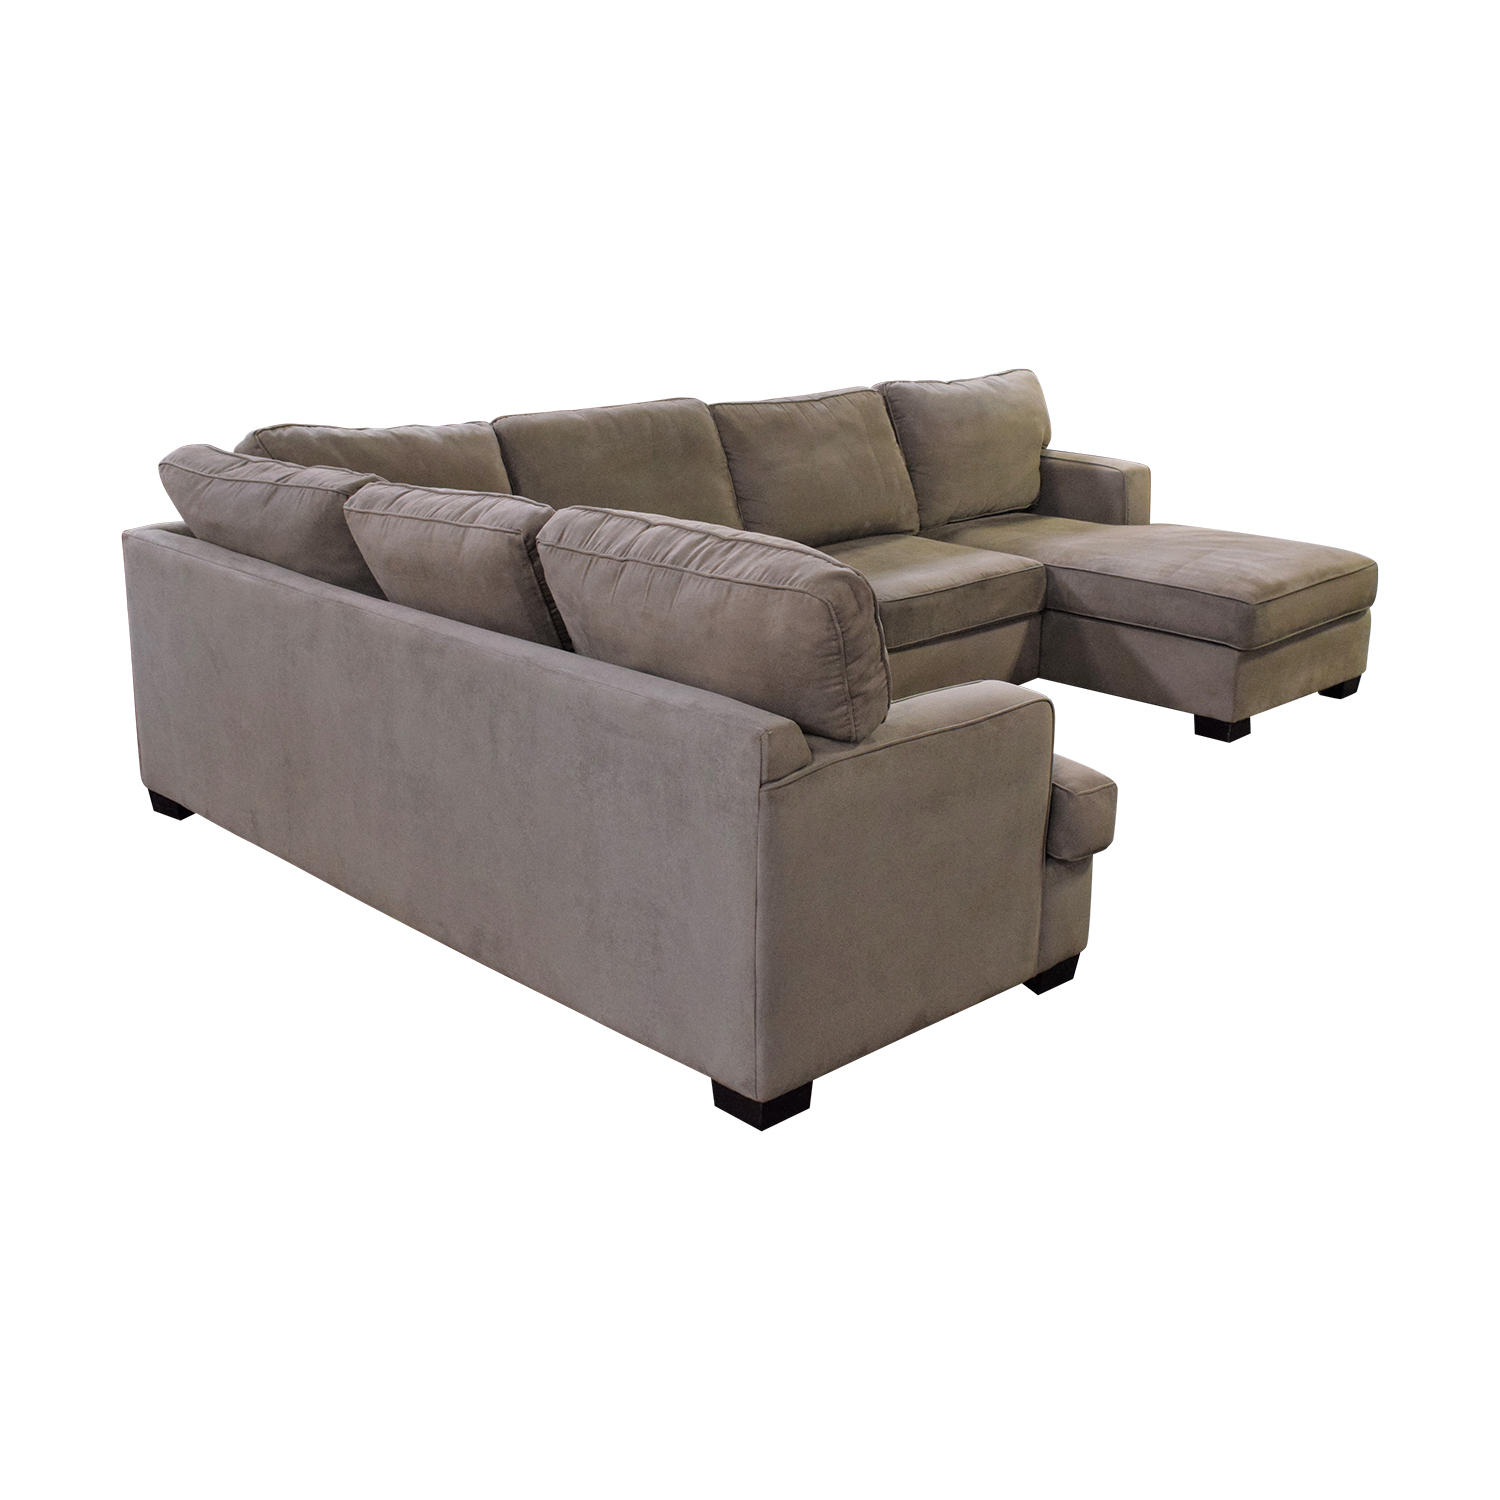 buy Bloomingdale's Bloomingdale's Sectional Sofa with Chaise online